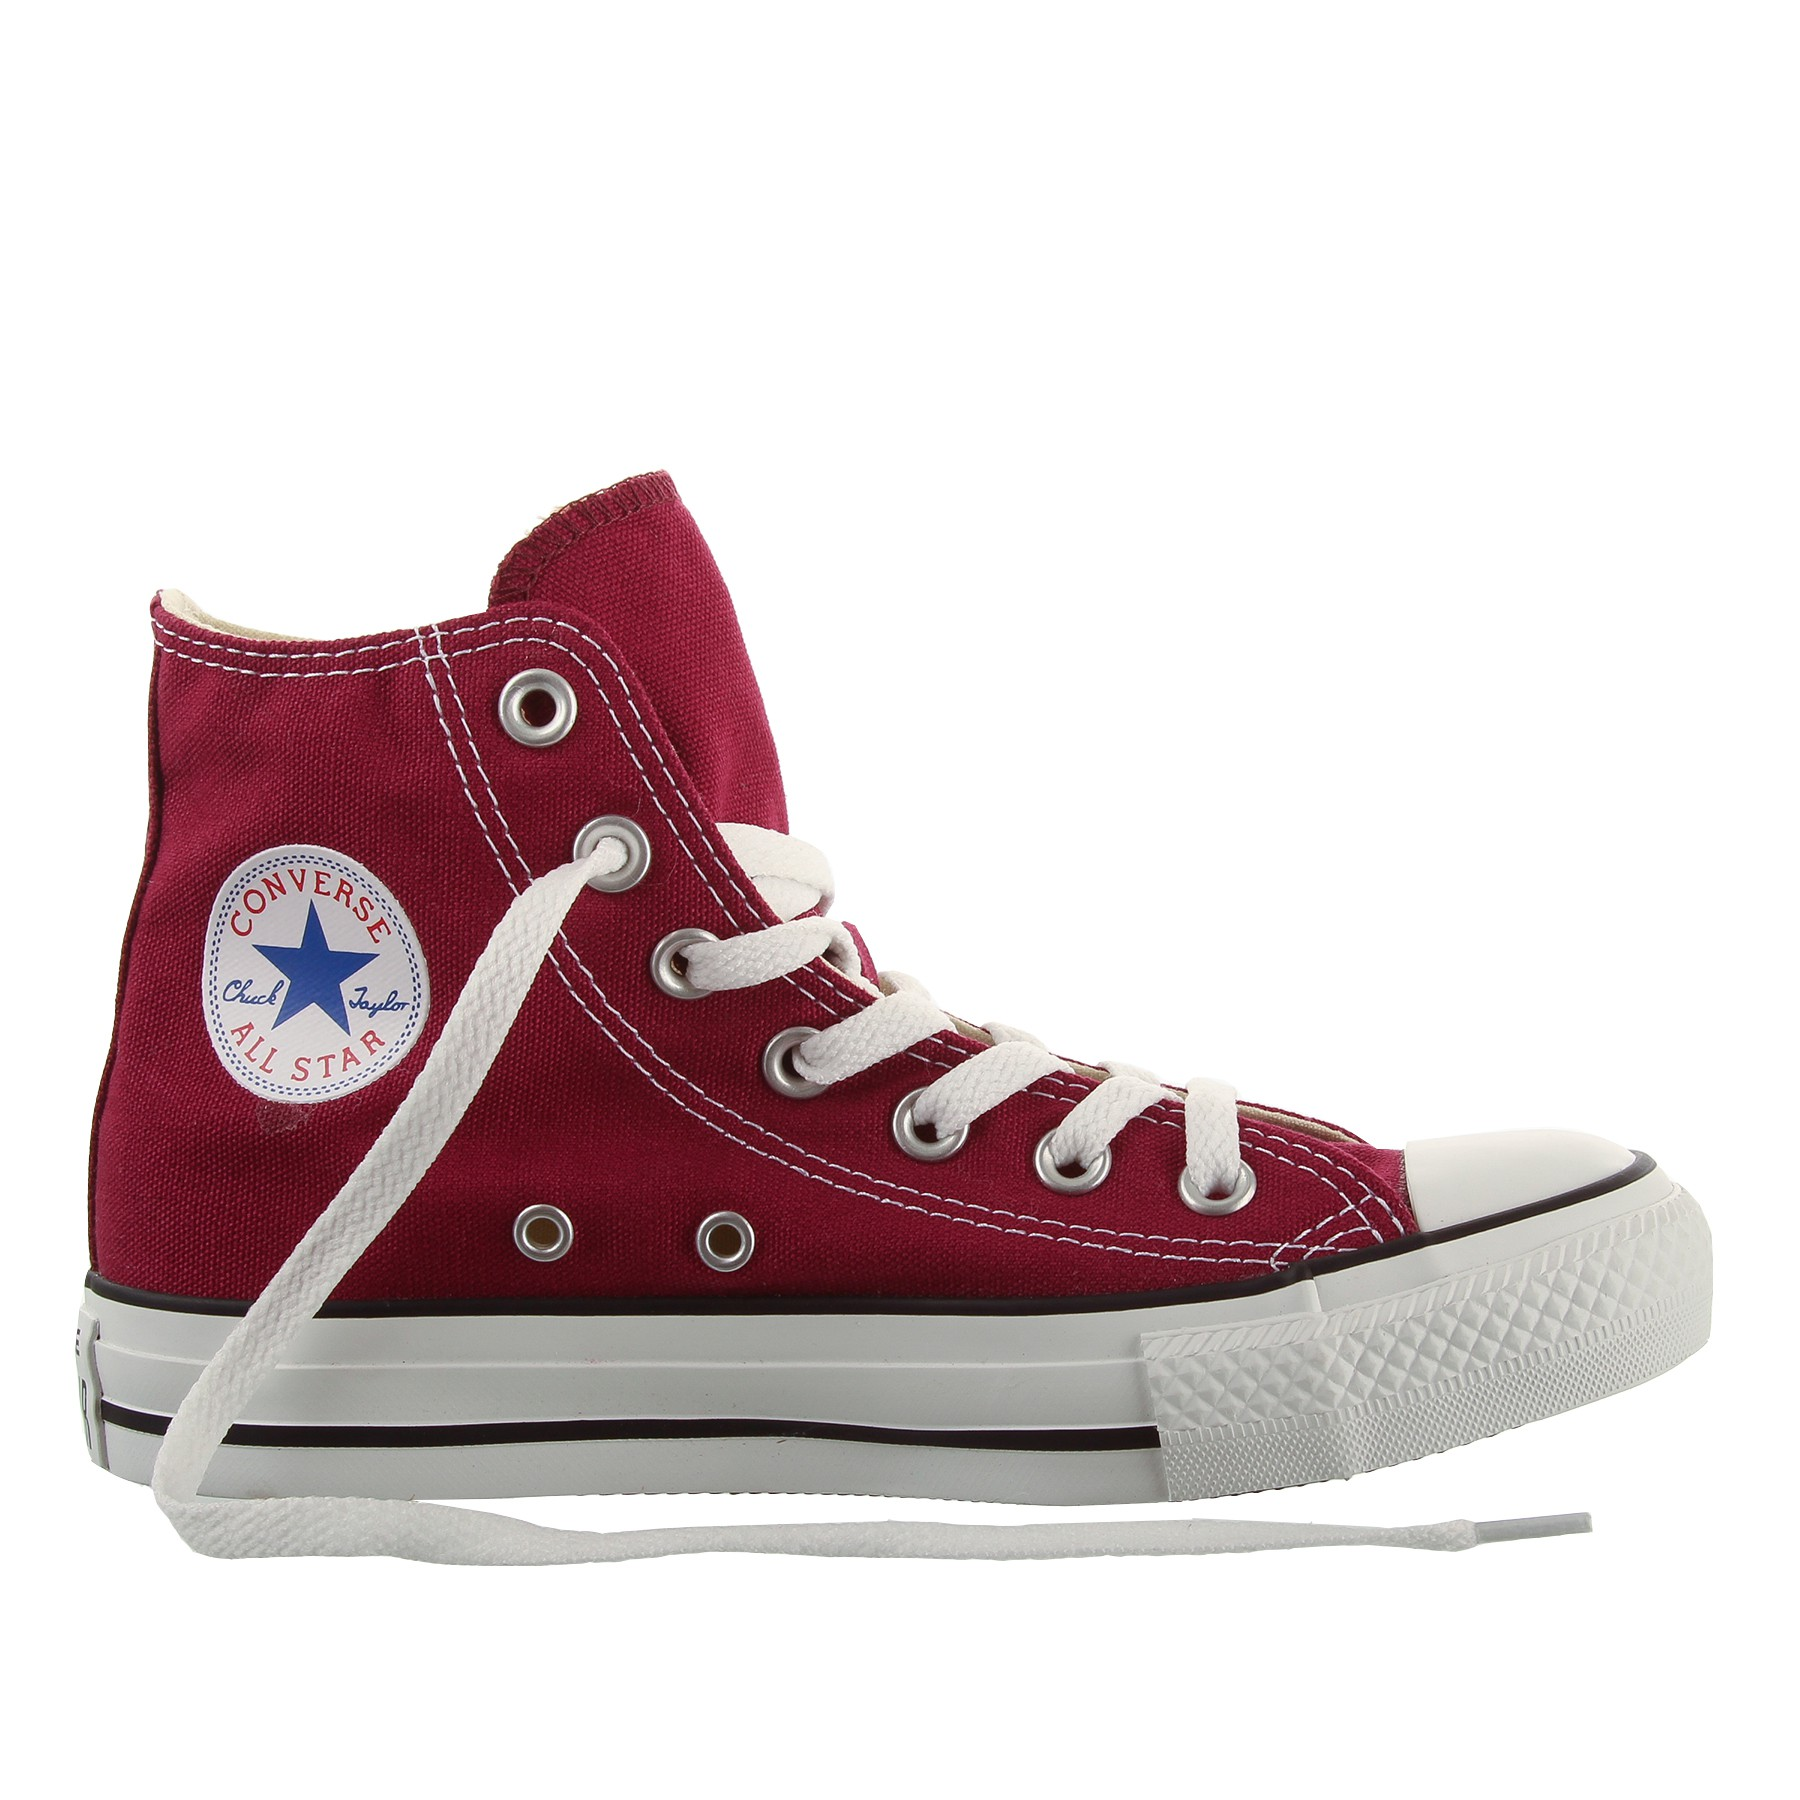 M9613 CT CHUCK TAYLOR AS CORE/MAROON Bild https://cdn03.plentymarkets.com/zsy4vjx32p87/item/images/4267/full/M9613-ama-03.JPG